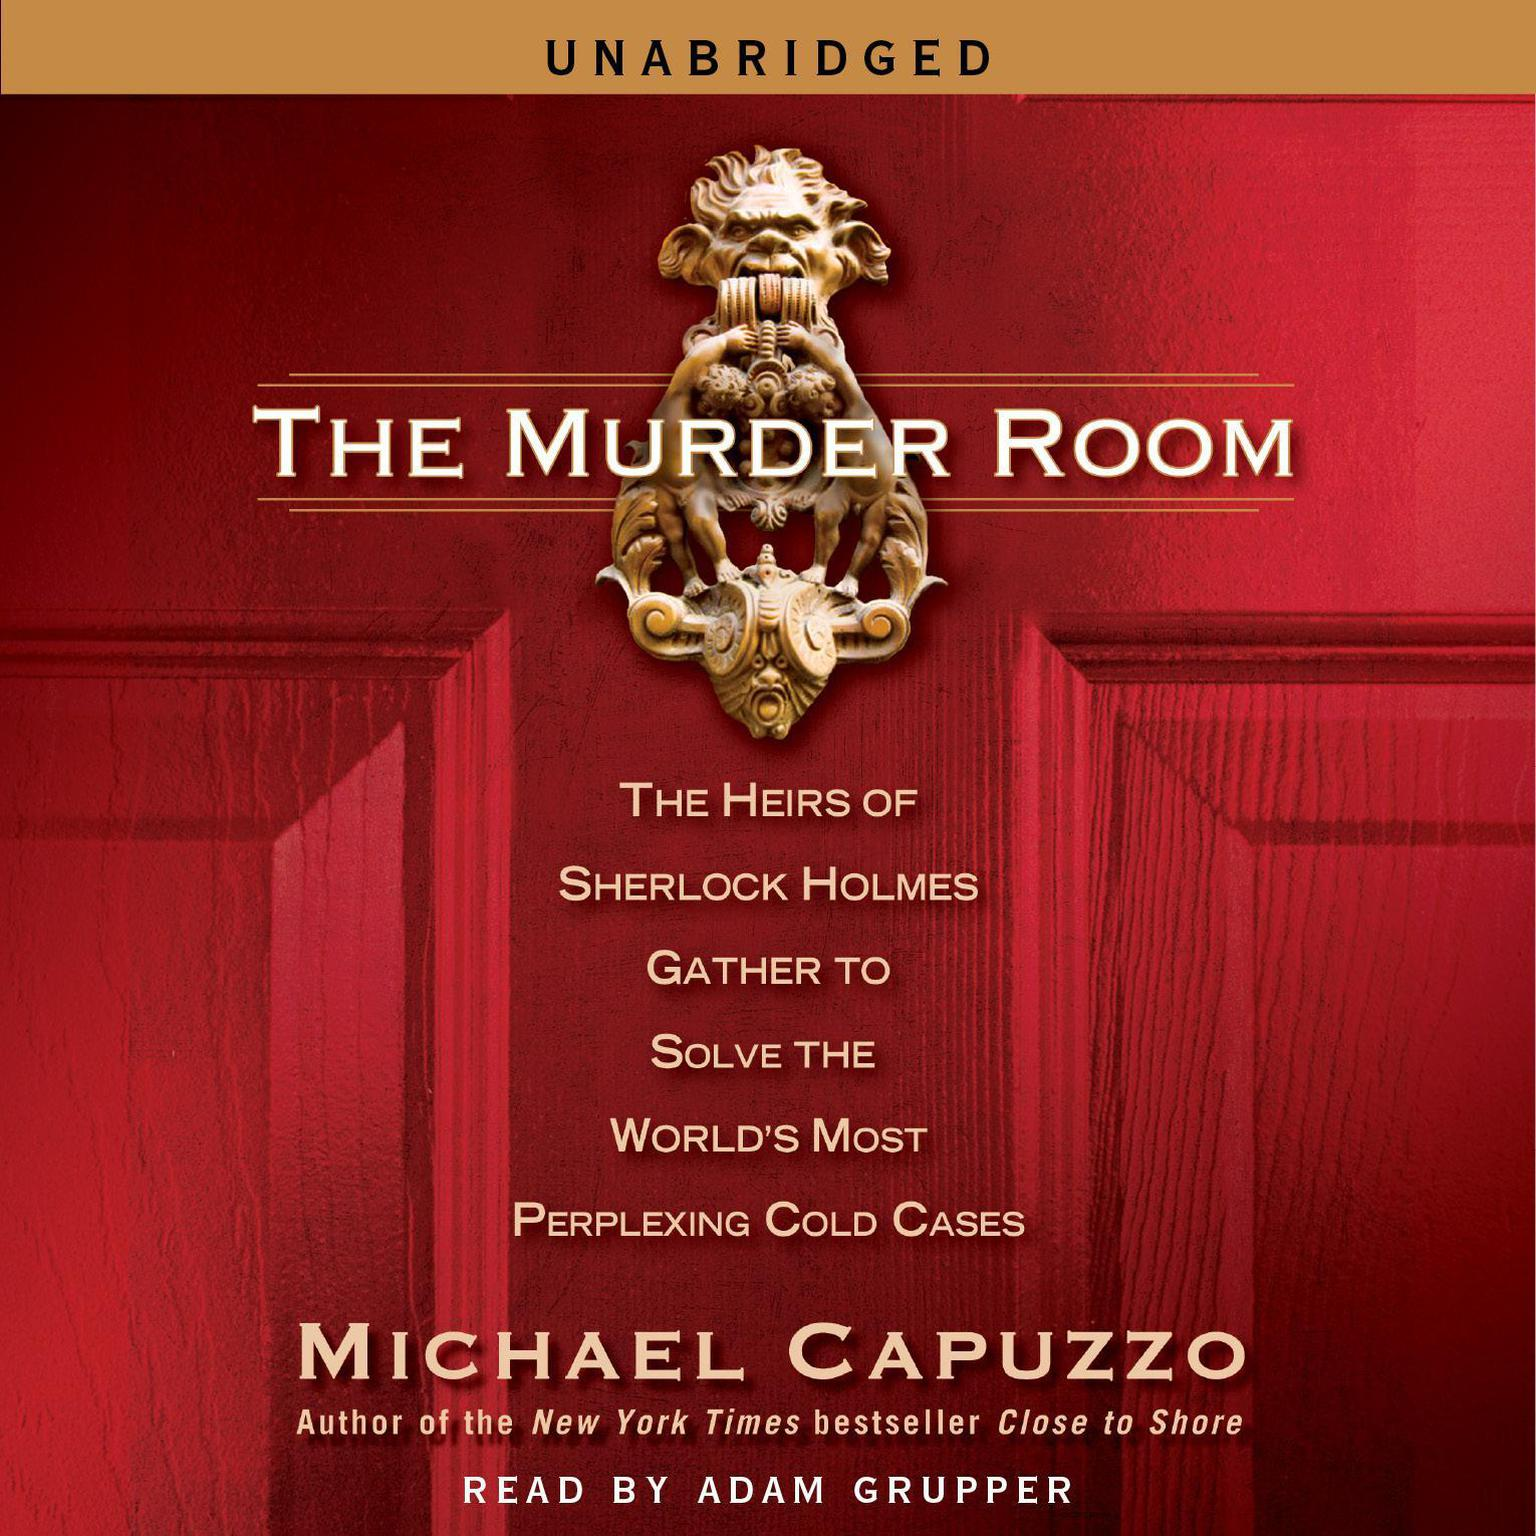 The Murder Room: The Heirs of Sherlock Holmes Gather to Solve the World's  Most Perplexing Cold Cases Audiobook